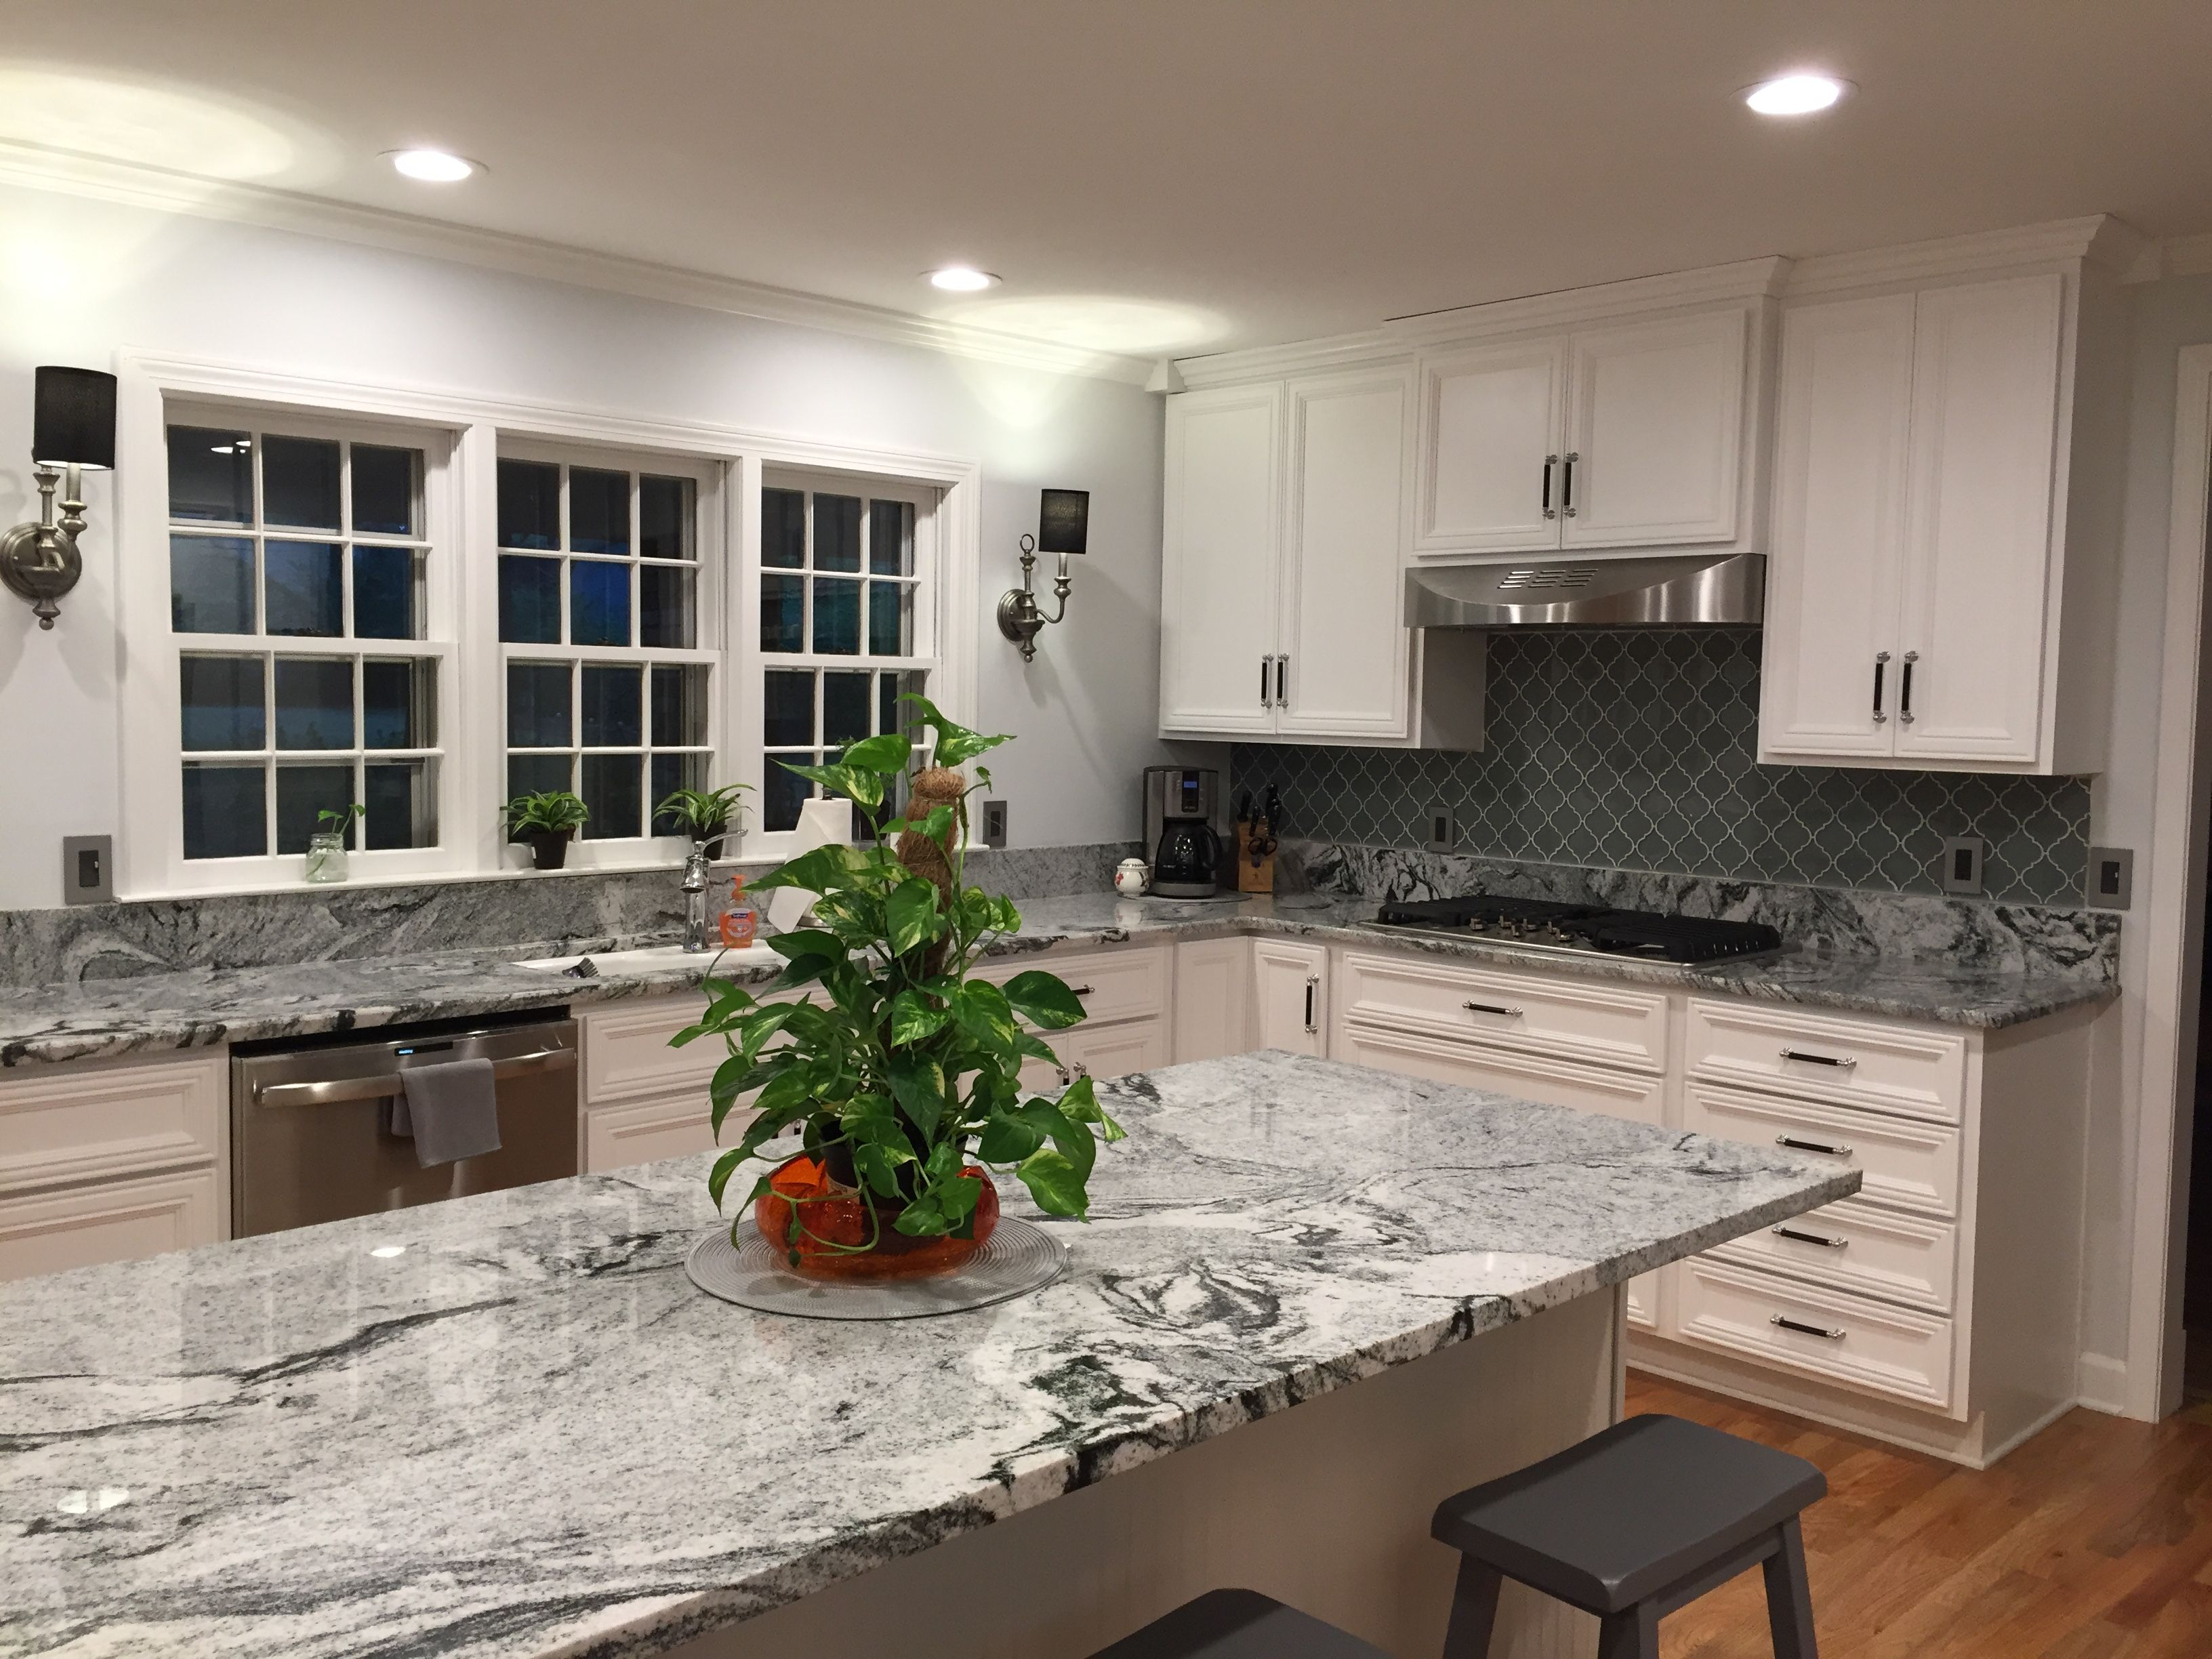 Countertops And Backsplash Combinations Granite Viscon White Backsplash Arabesque Glass Tile Kitchens